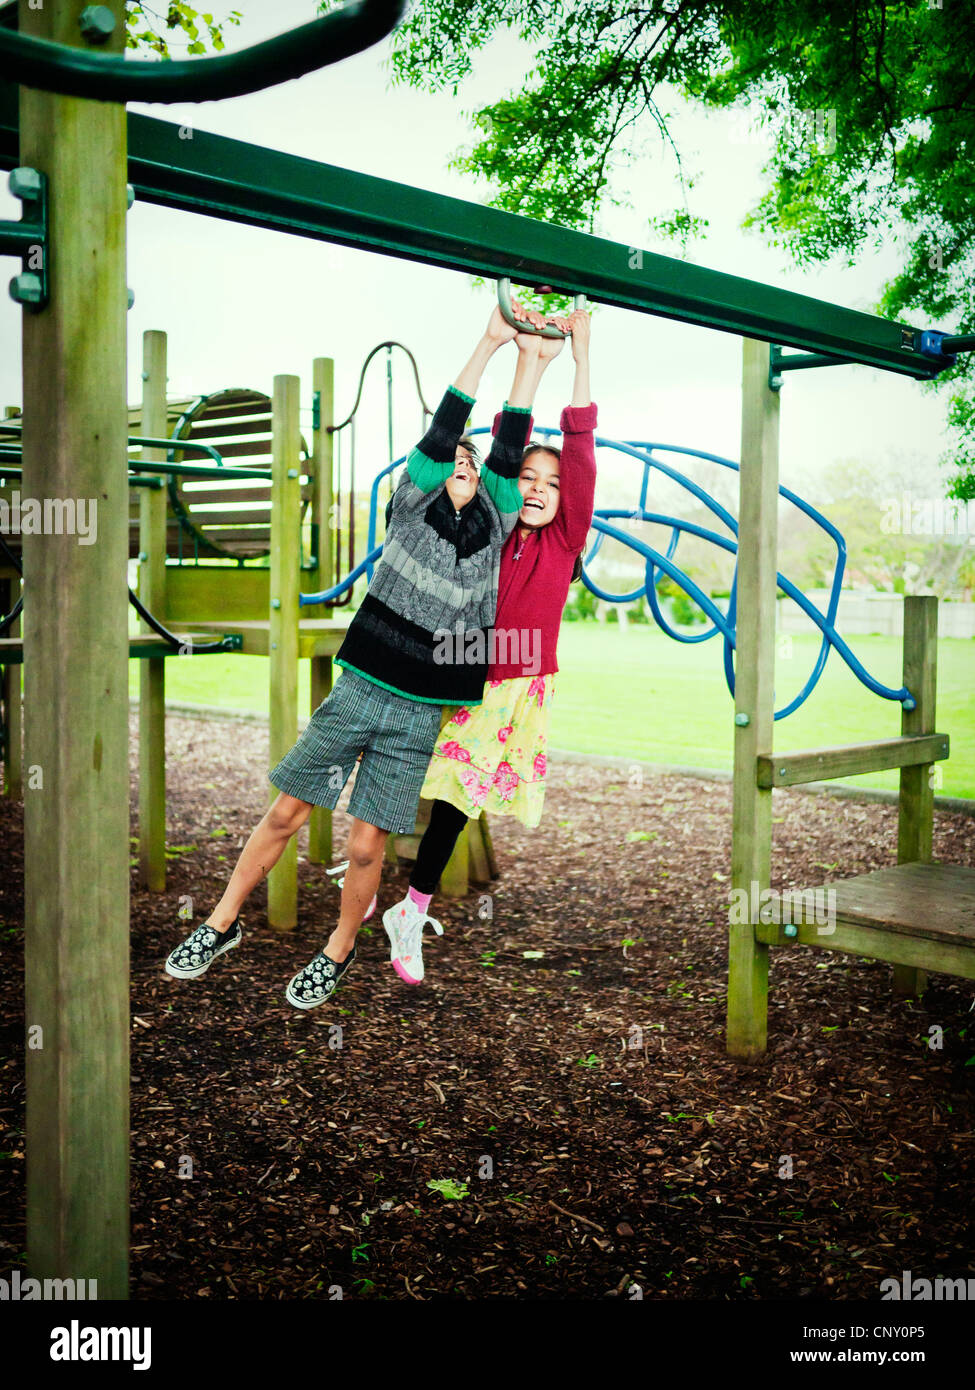 Boy and girl swing together on climbing frame. - Stock Image